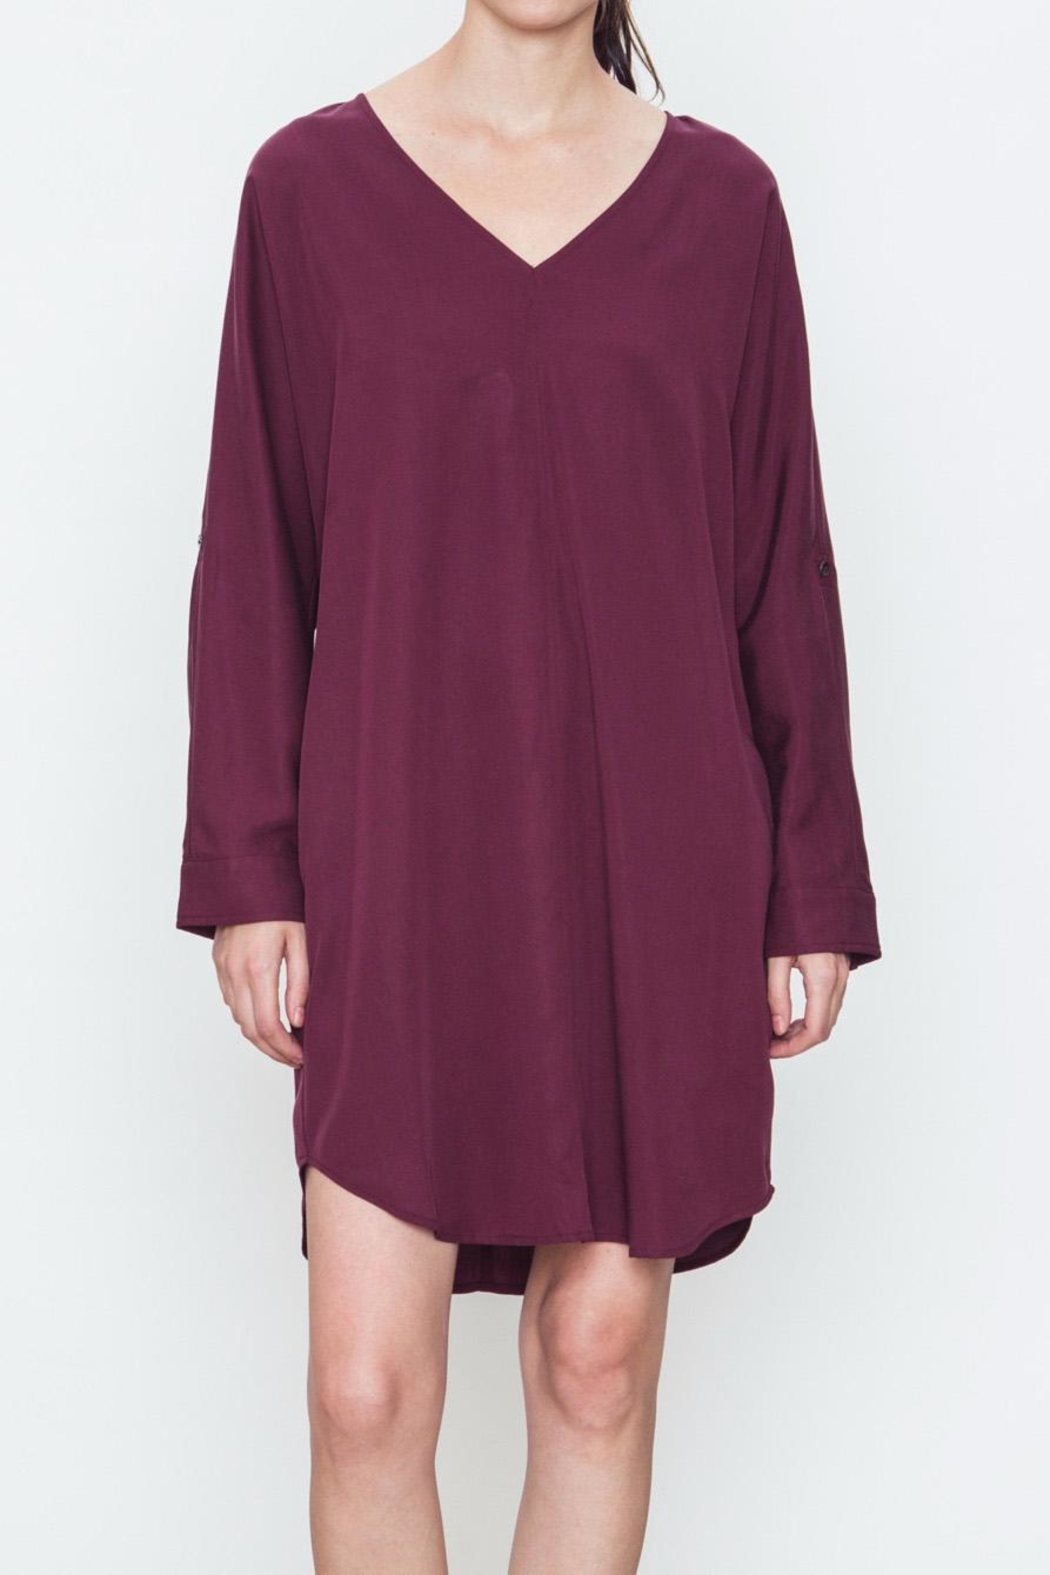 Movint V-Neck Pocket Dress - Main Image